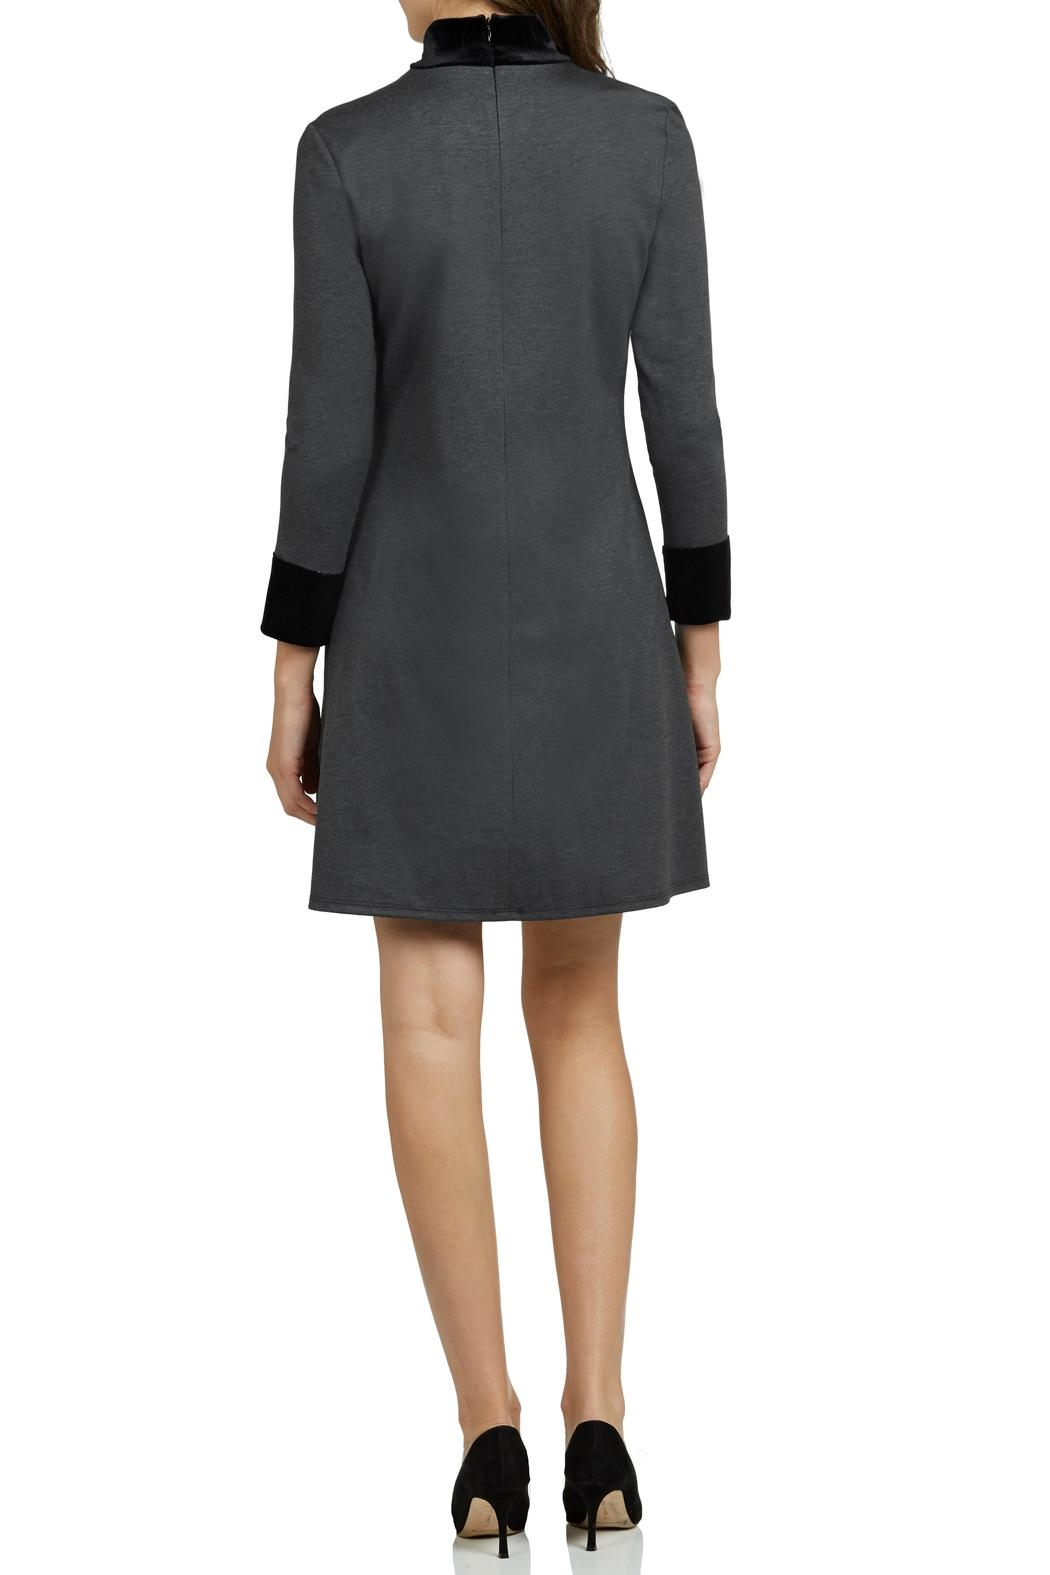 Jude Connally Adriana Ponte Knit - Front Full Image